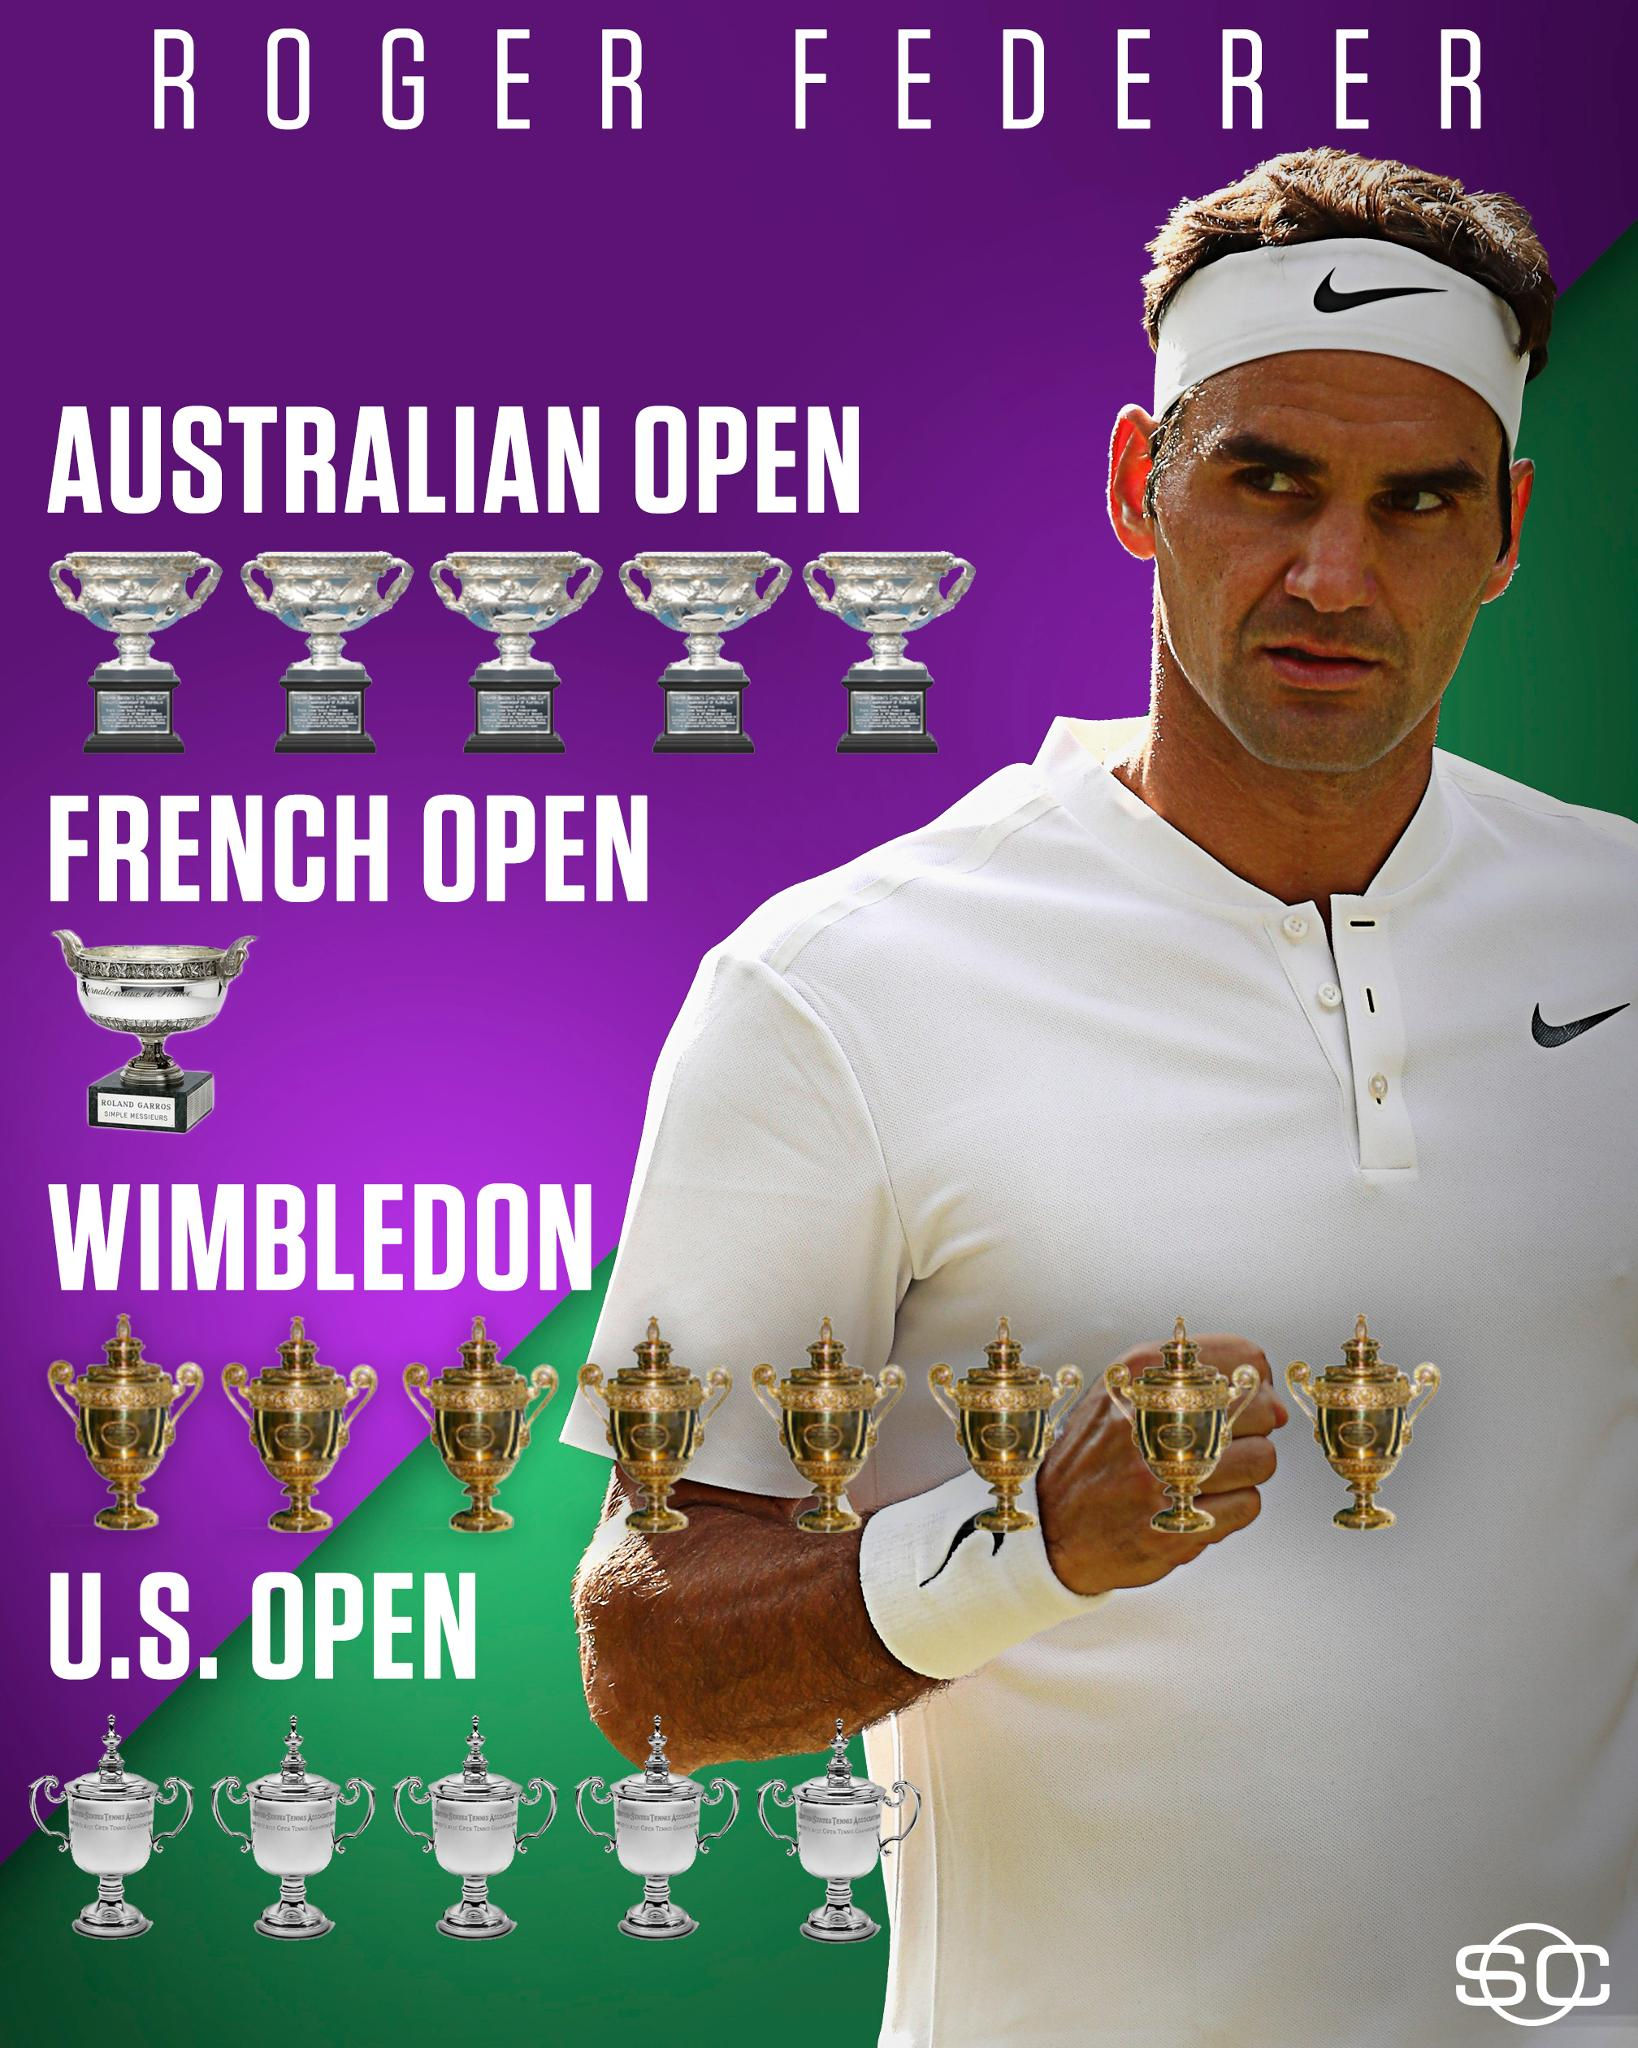 Today, Roger Federer is celebrating his 36th birthday.  He's managed to fill up his trophy case over the years. https://t.co/iB61FsOGh0